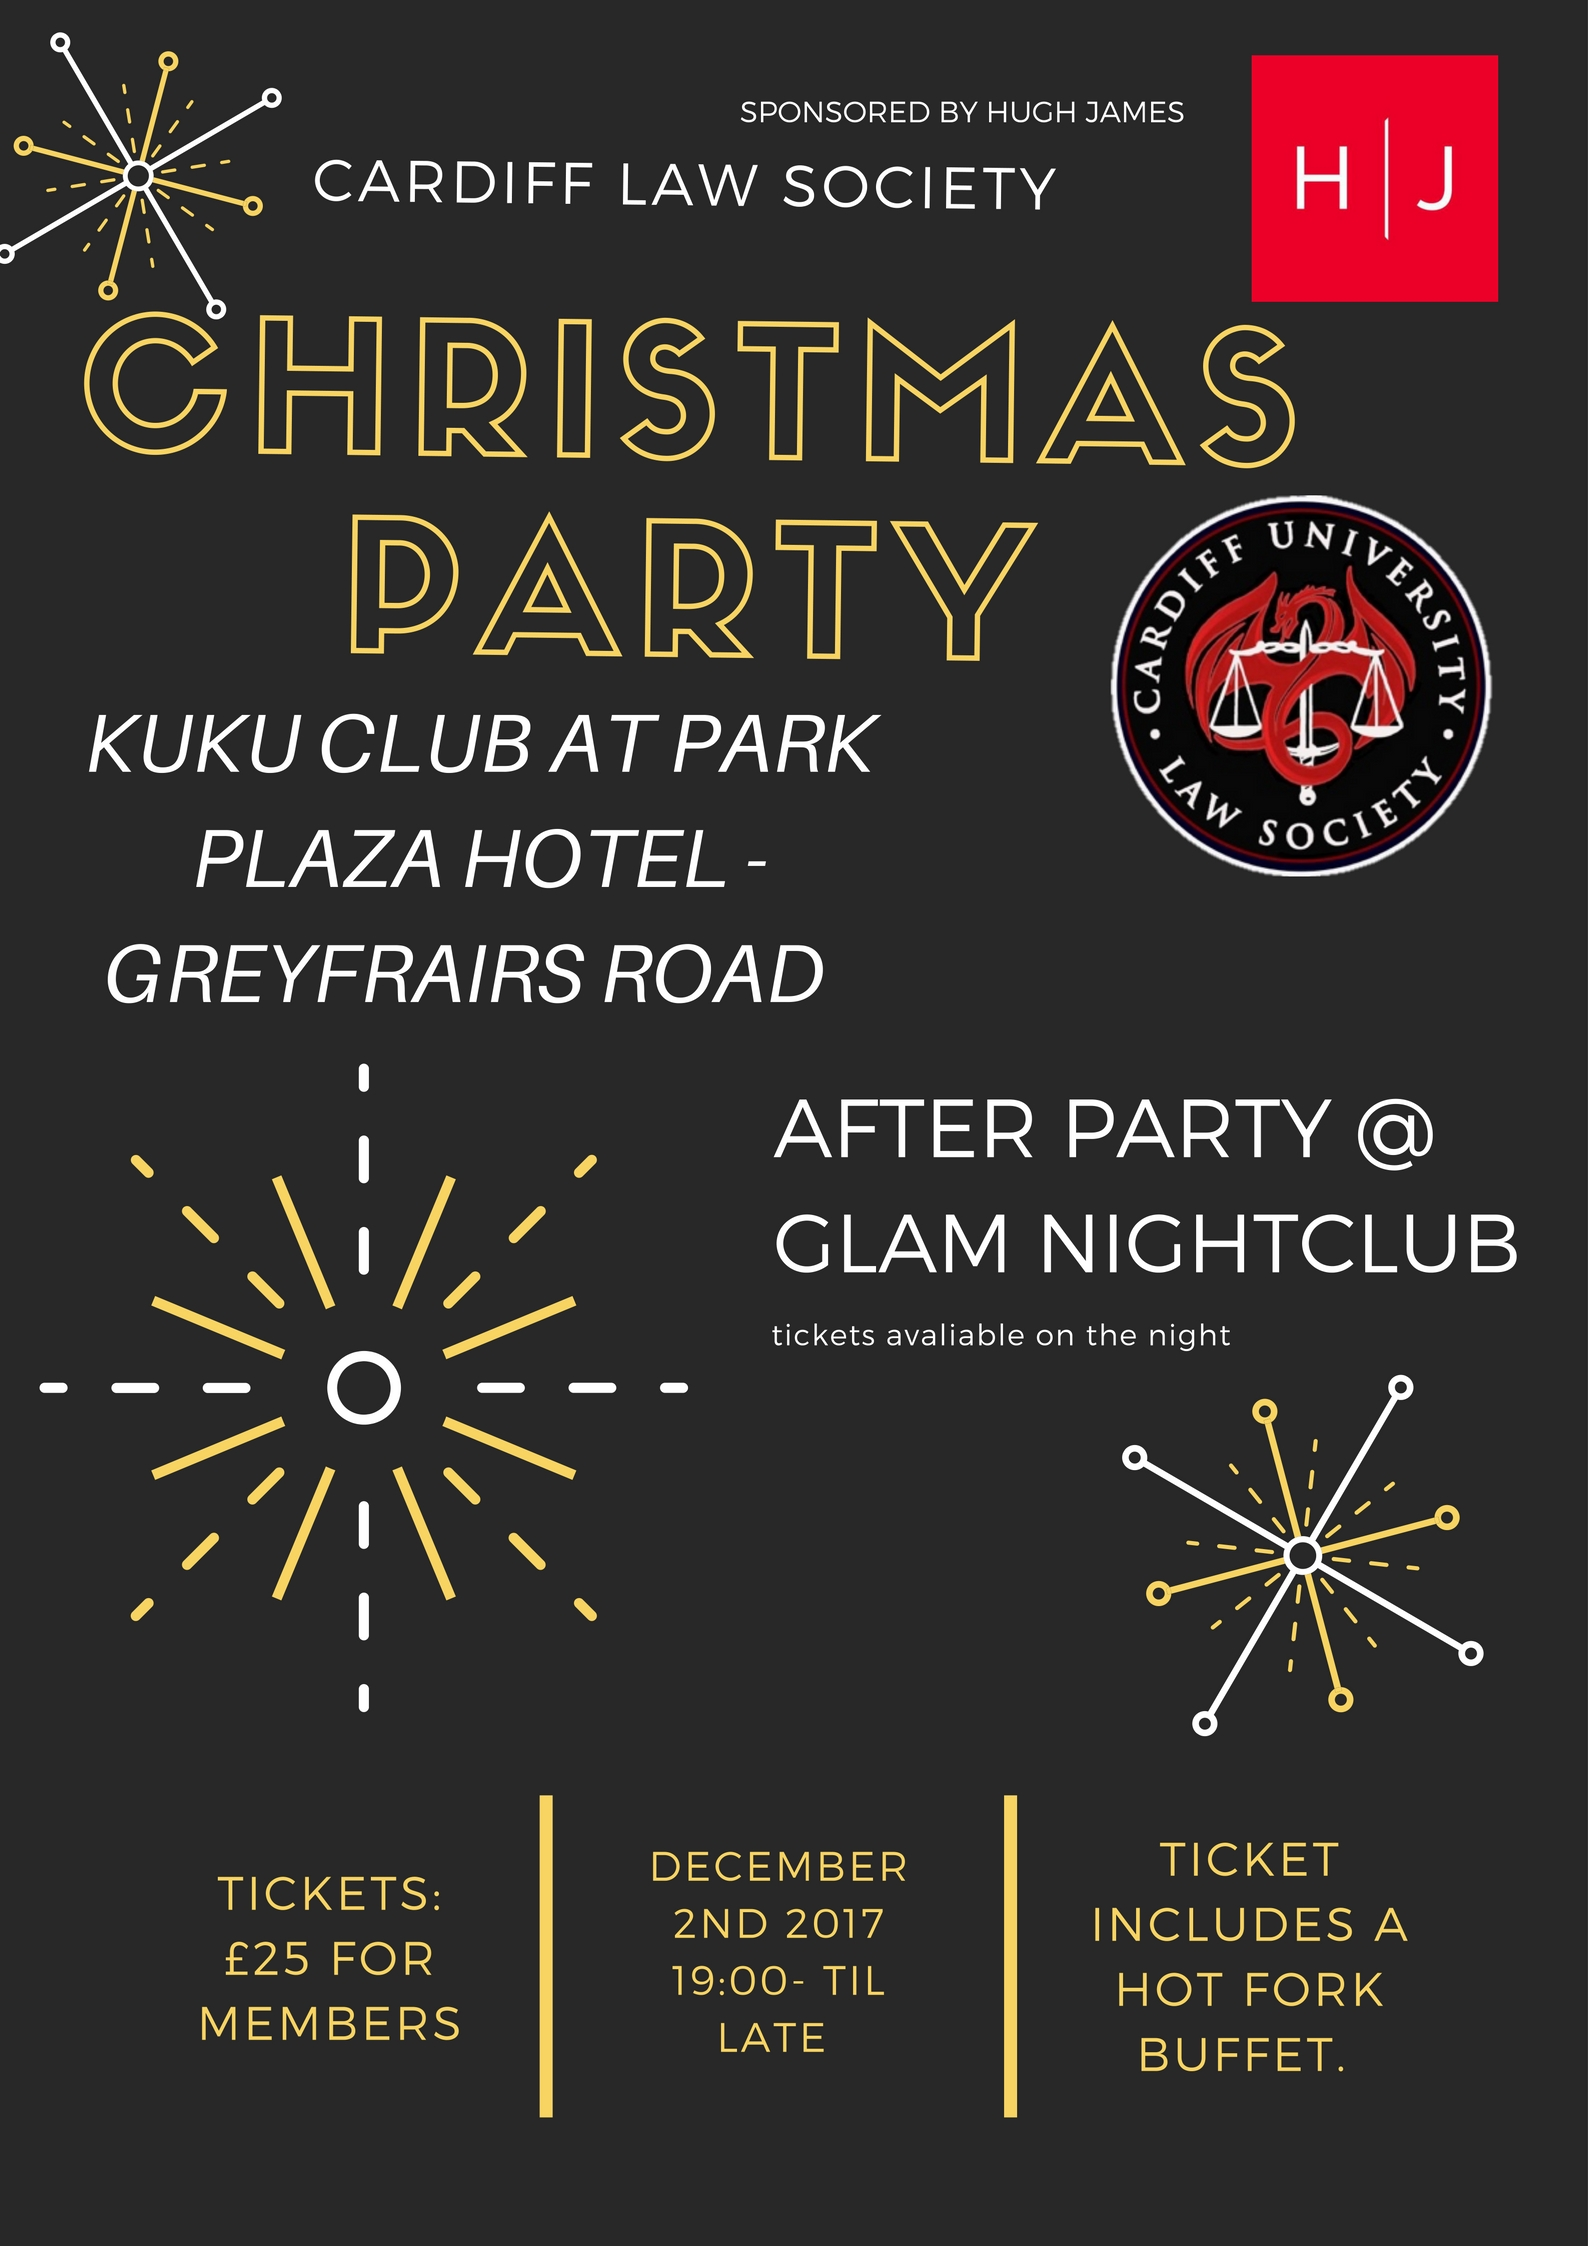 LAW SOCIETY CHRISTMAS PARTY